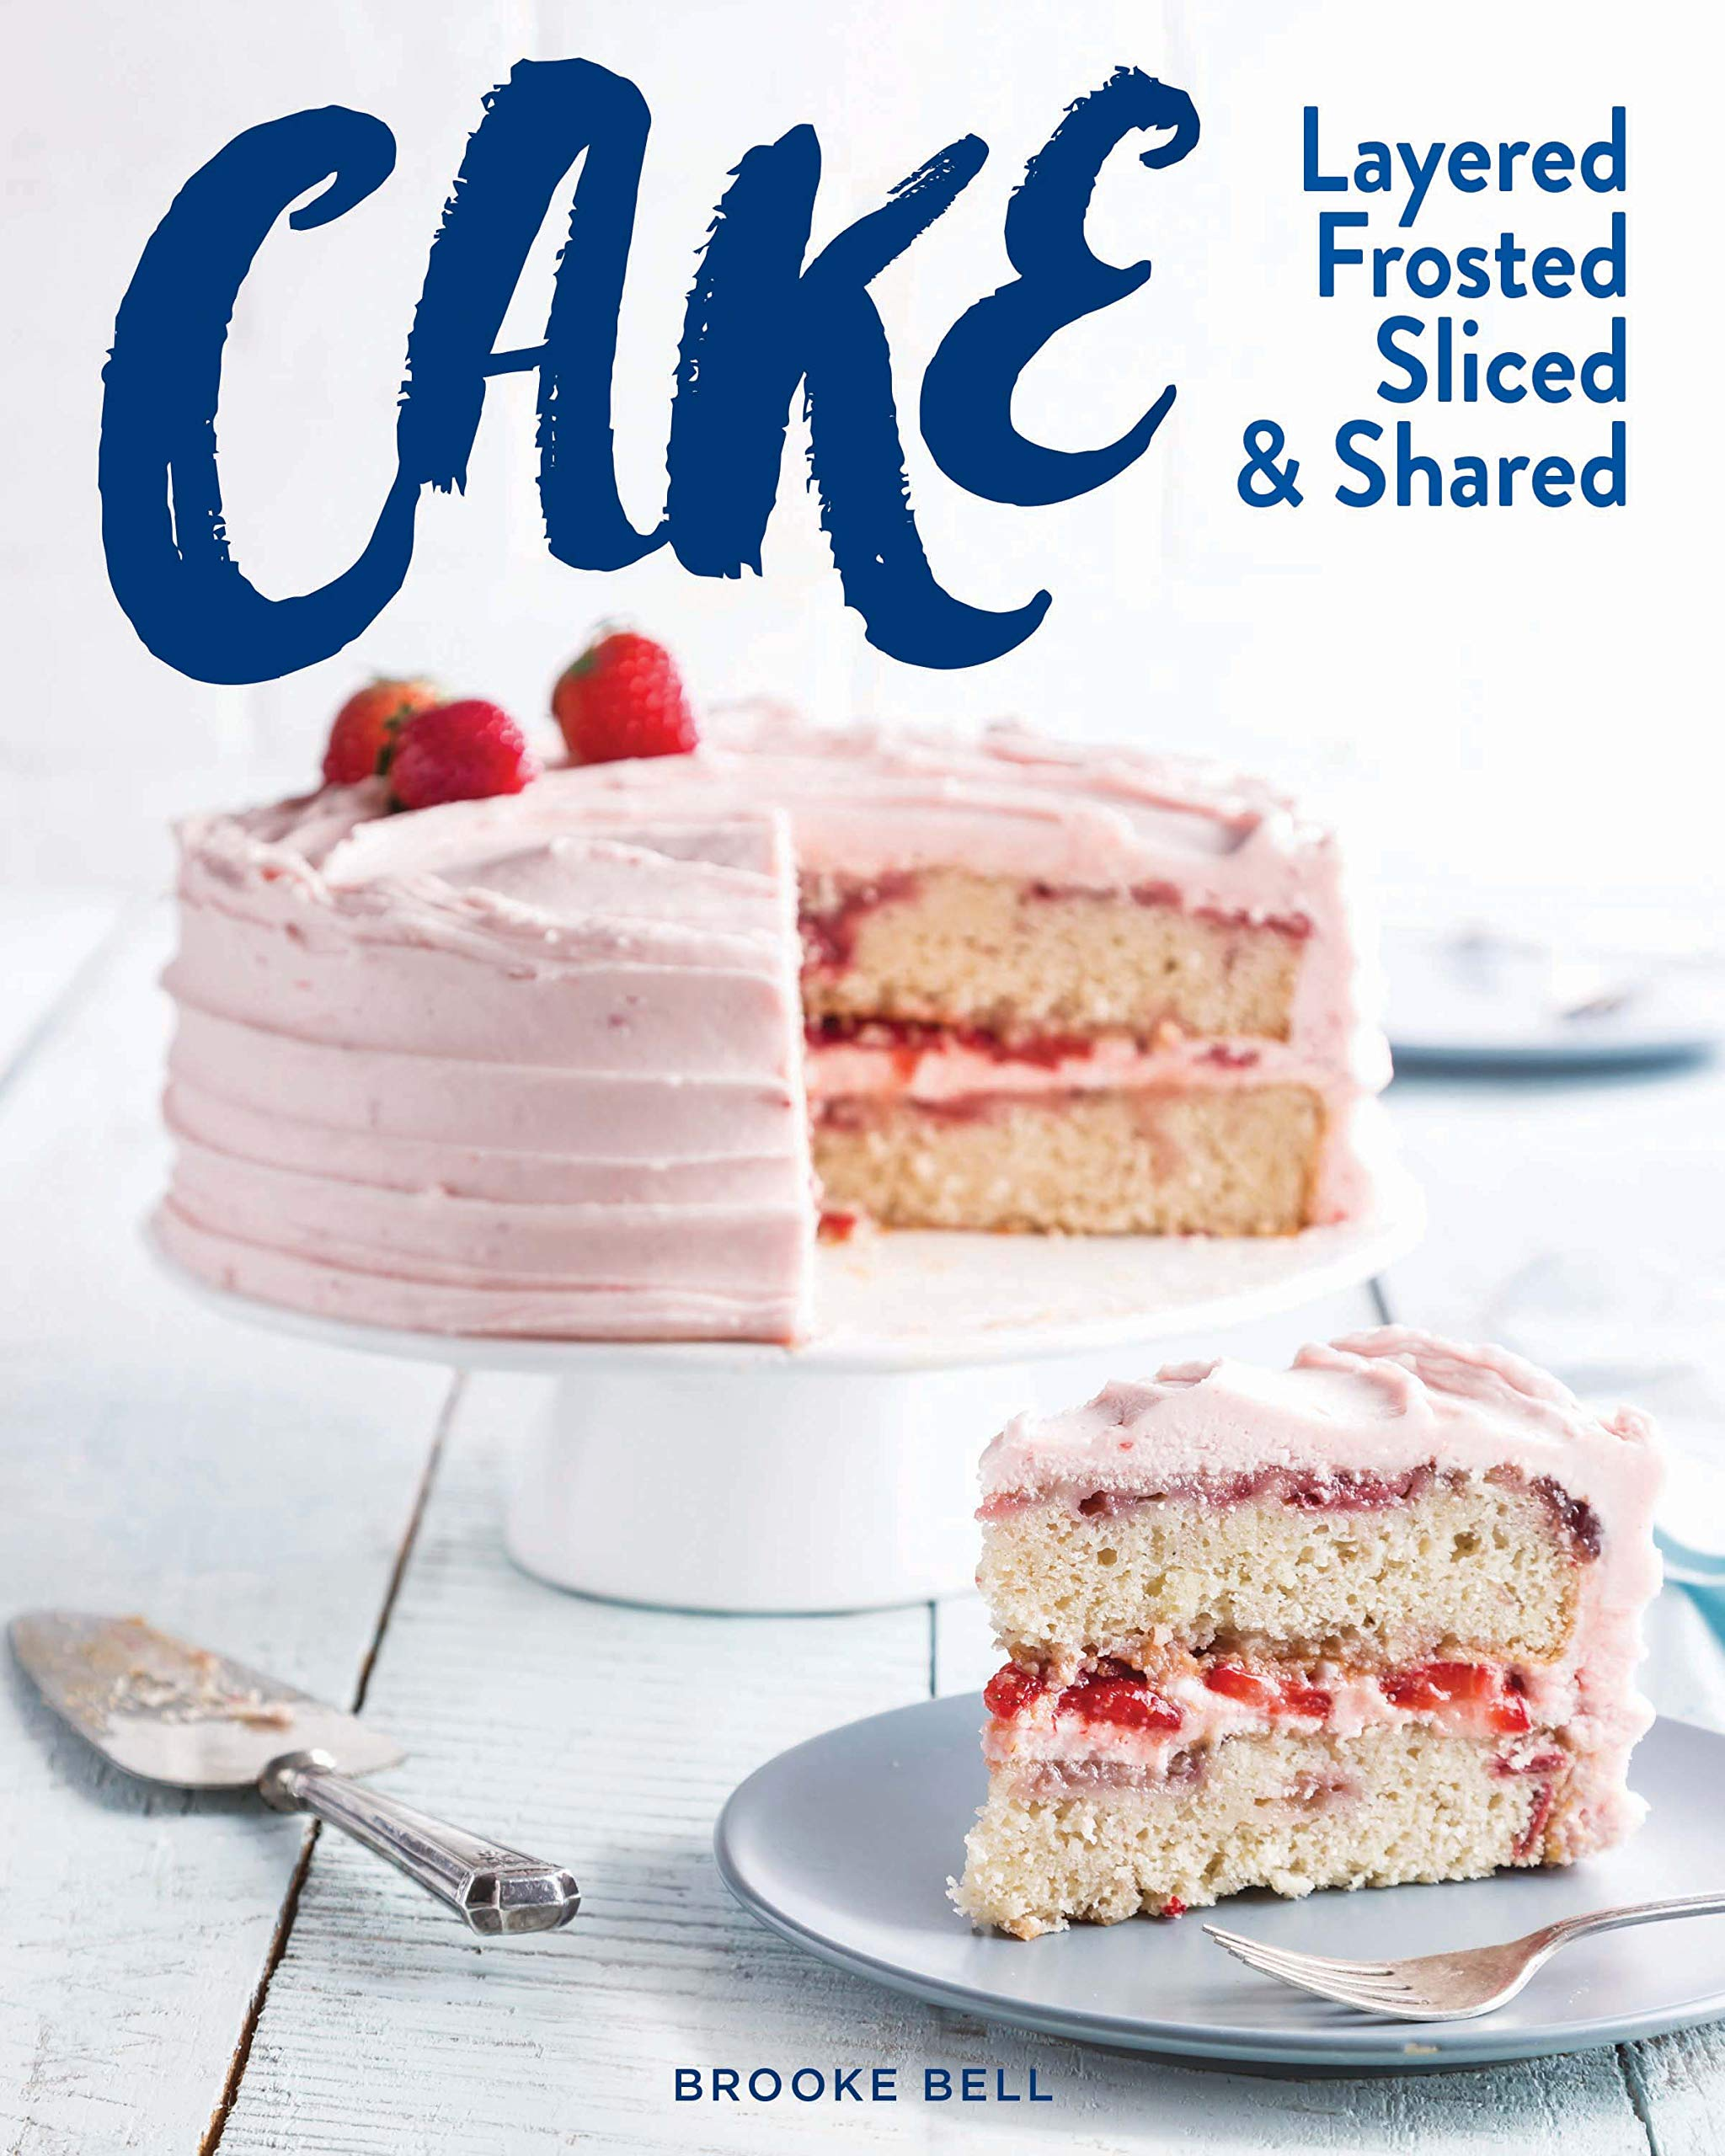 Cake: Layered, Frosted, Sliced & Shared (The Bake Feed) by 83 Press